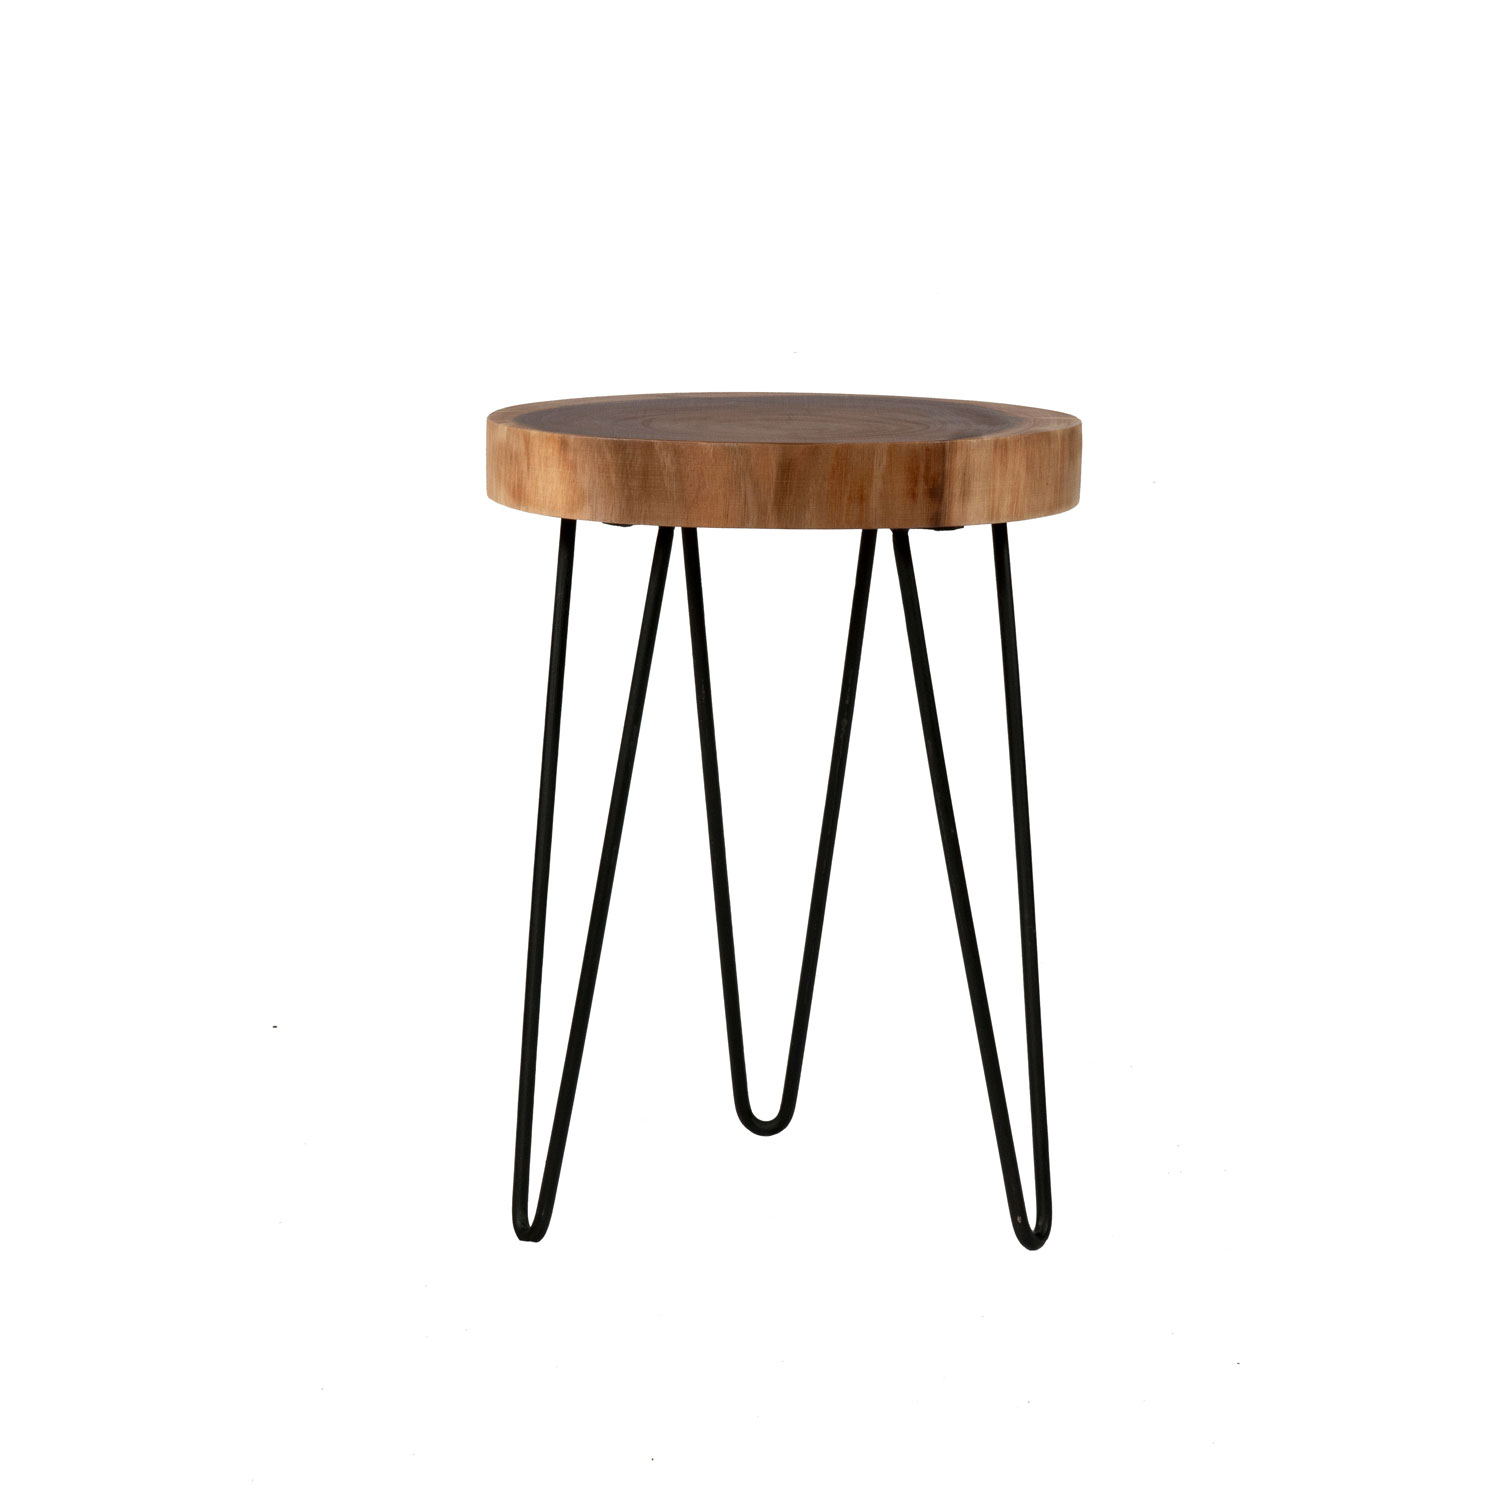 east main laredo brown teakwood round accent table hairpin leg hover zoom pottery barn drum decorative mirrors pine trestle led night light wood and iron coffee cherry dining